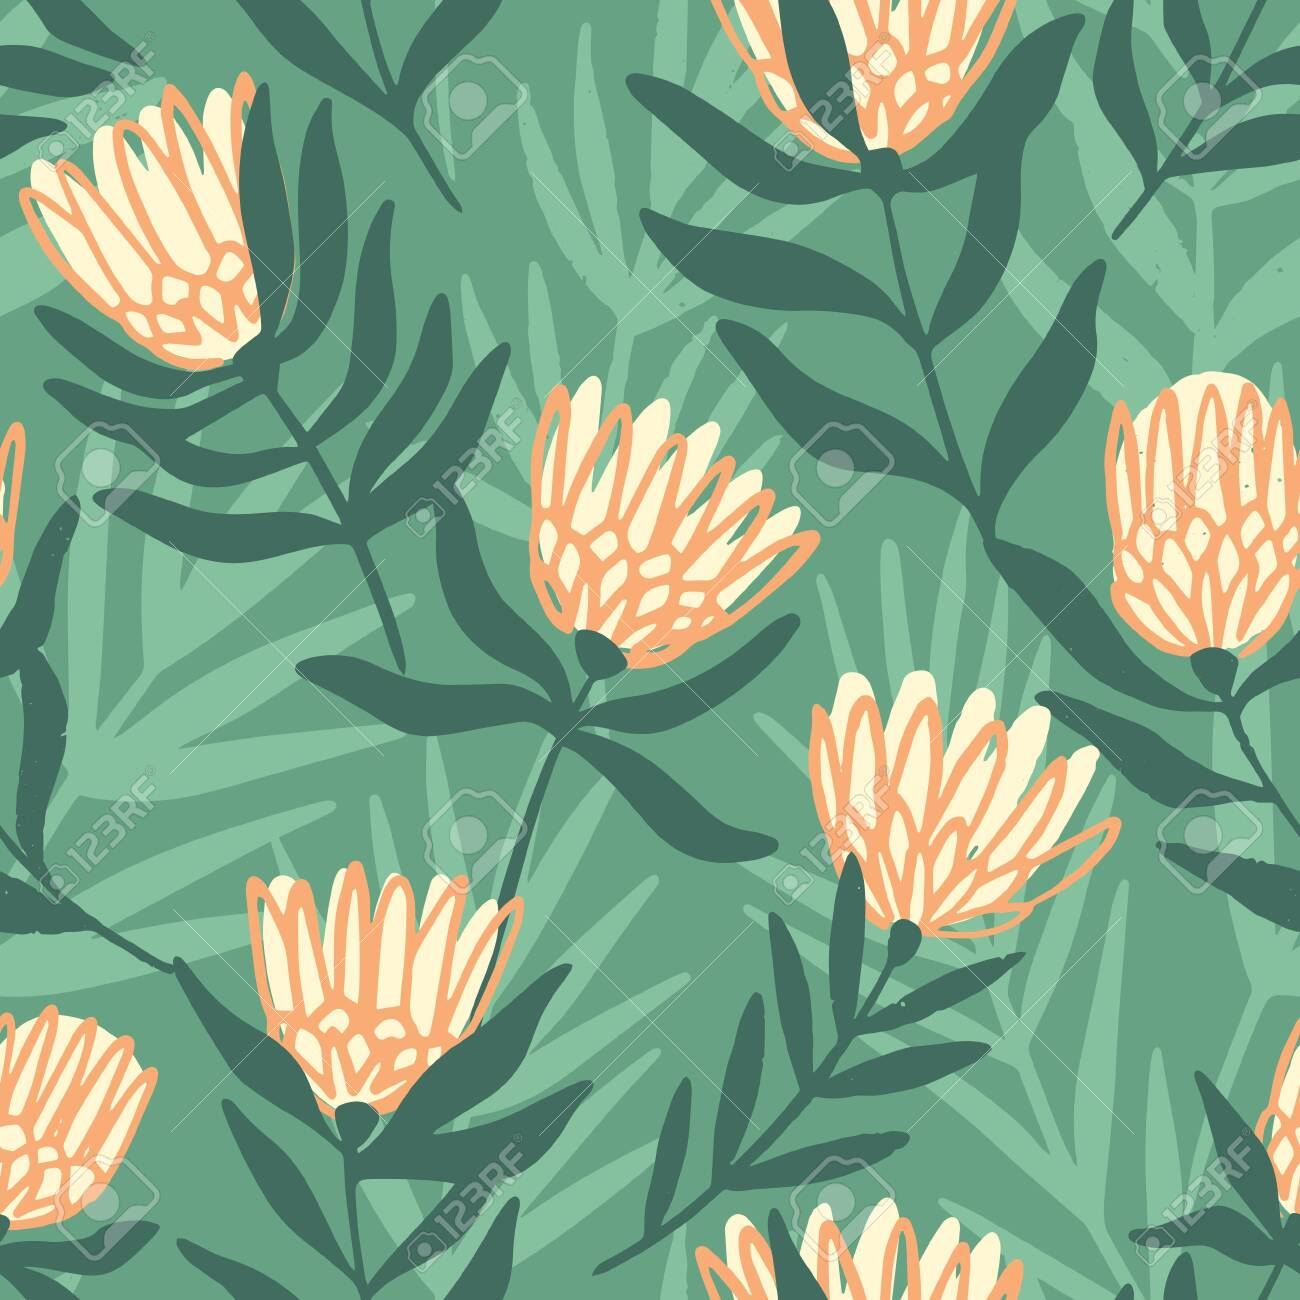 Protea and eucalyptus leaves pattern. Seamless motif for wrapping, wallpaper, fabric, decoration print. Vector illustration - 144102766